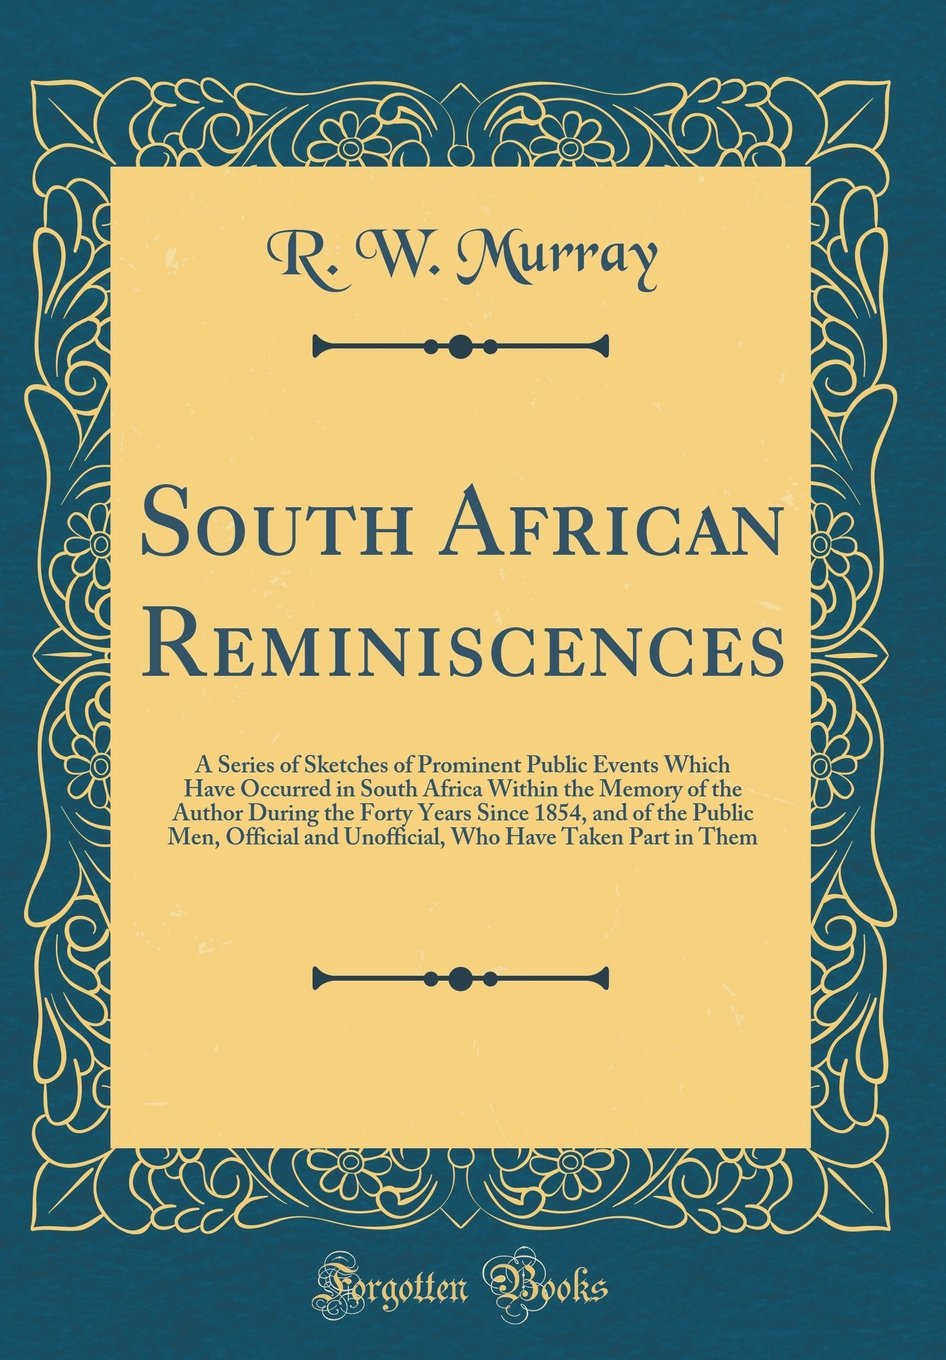 South African Reminiscences: A Series of Sketches of Prominent Public Events Which Have Occurred in South Africa Within the Memory of the Author ... and Unofficial, Who Have Taken Part in Them pdf epub